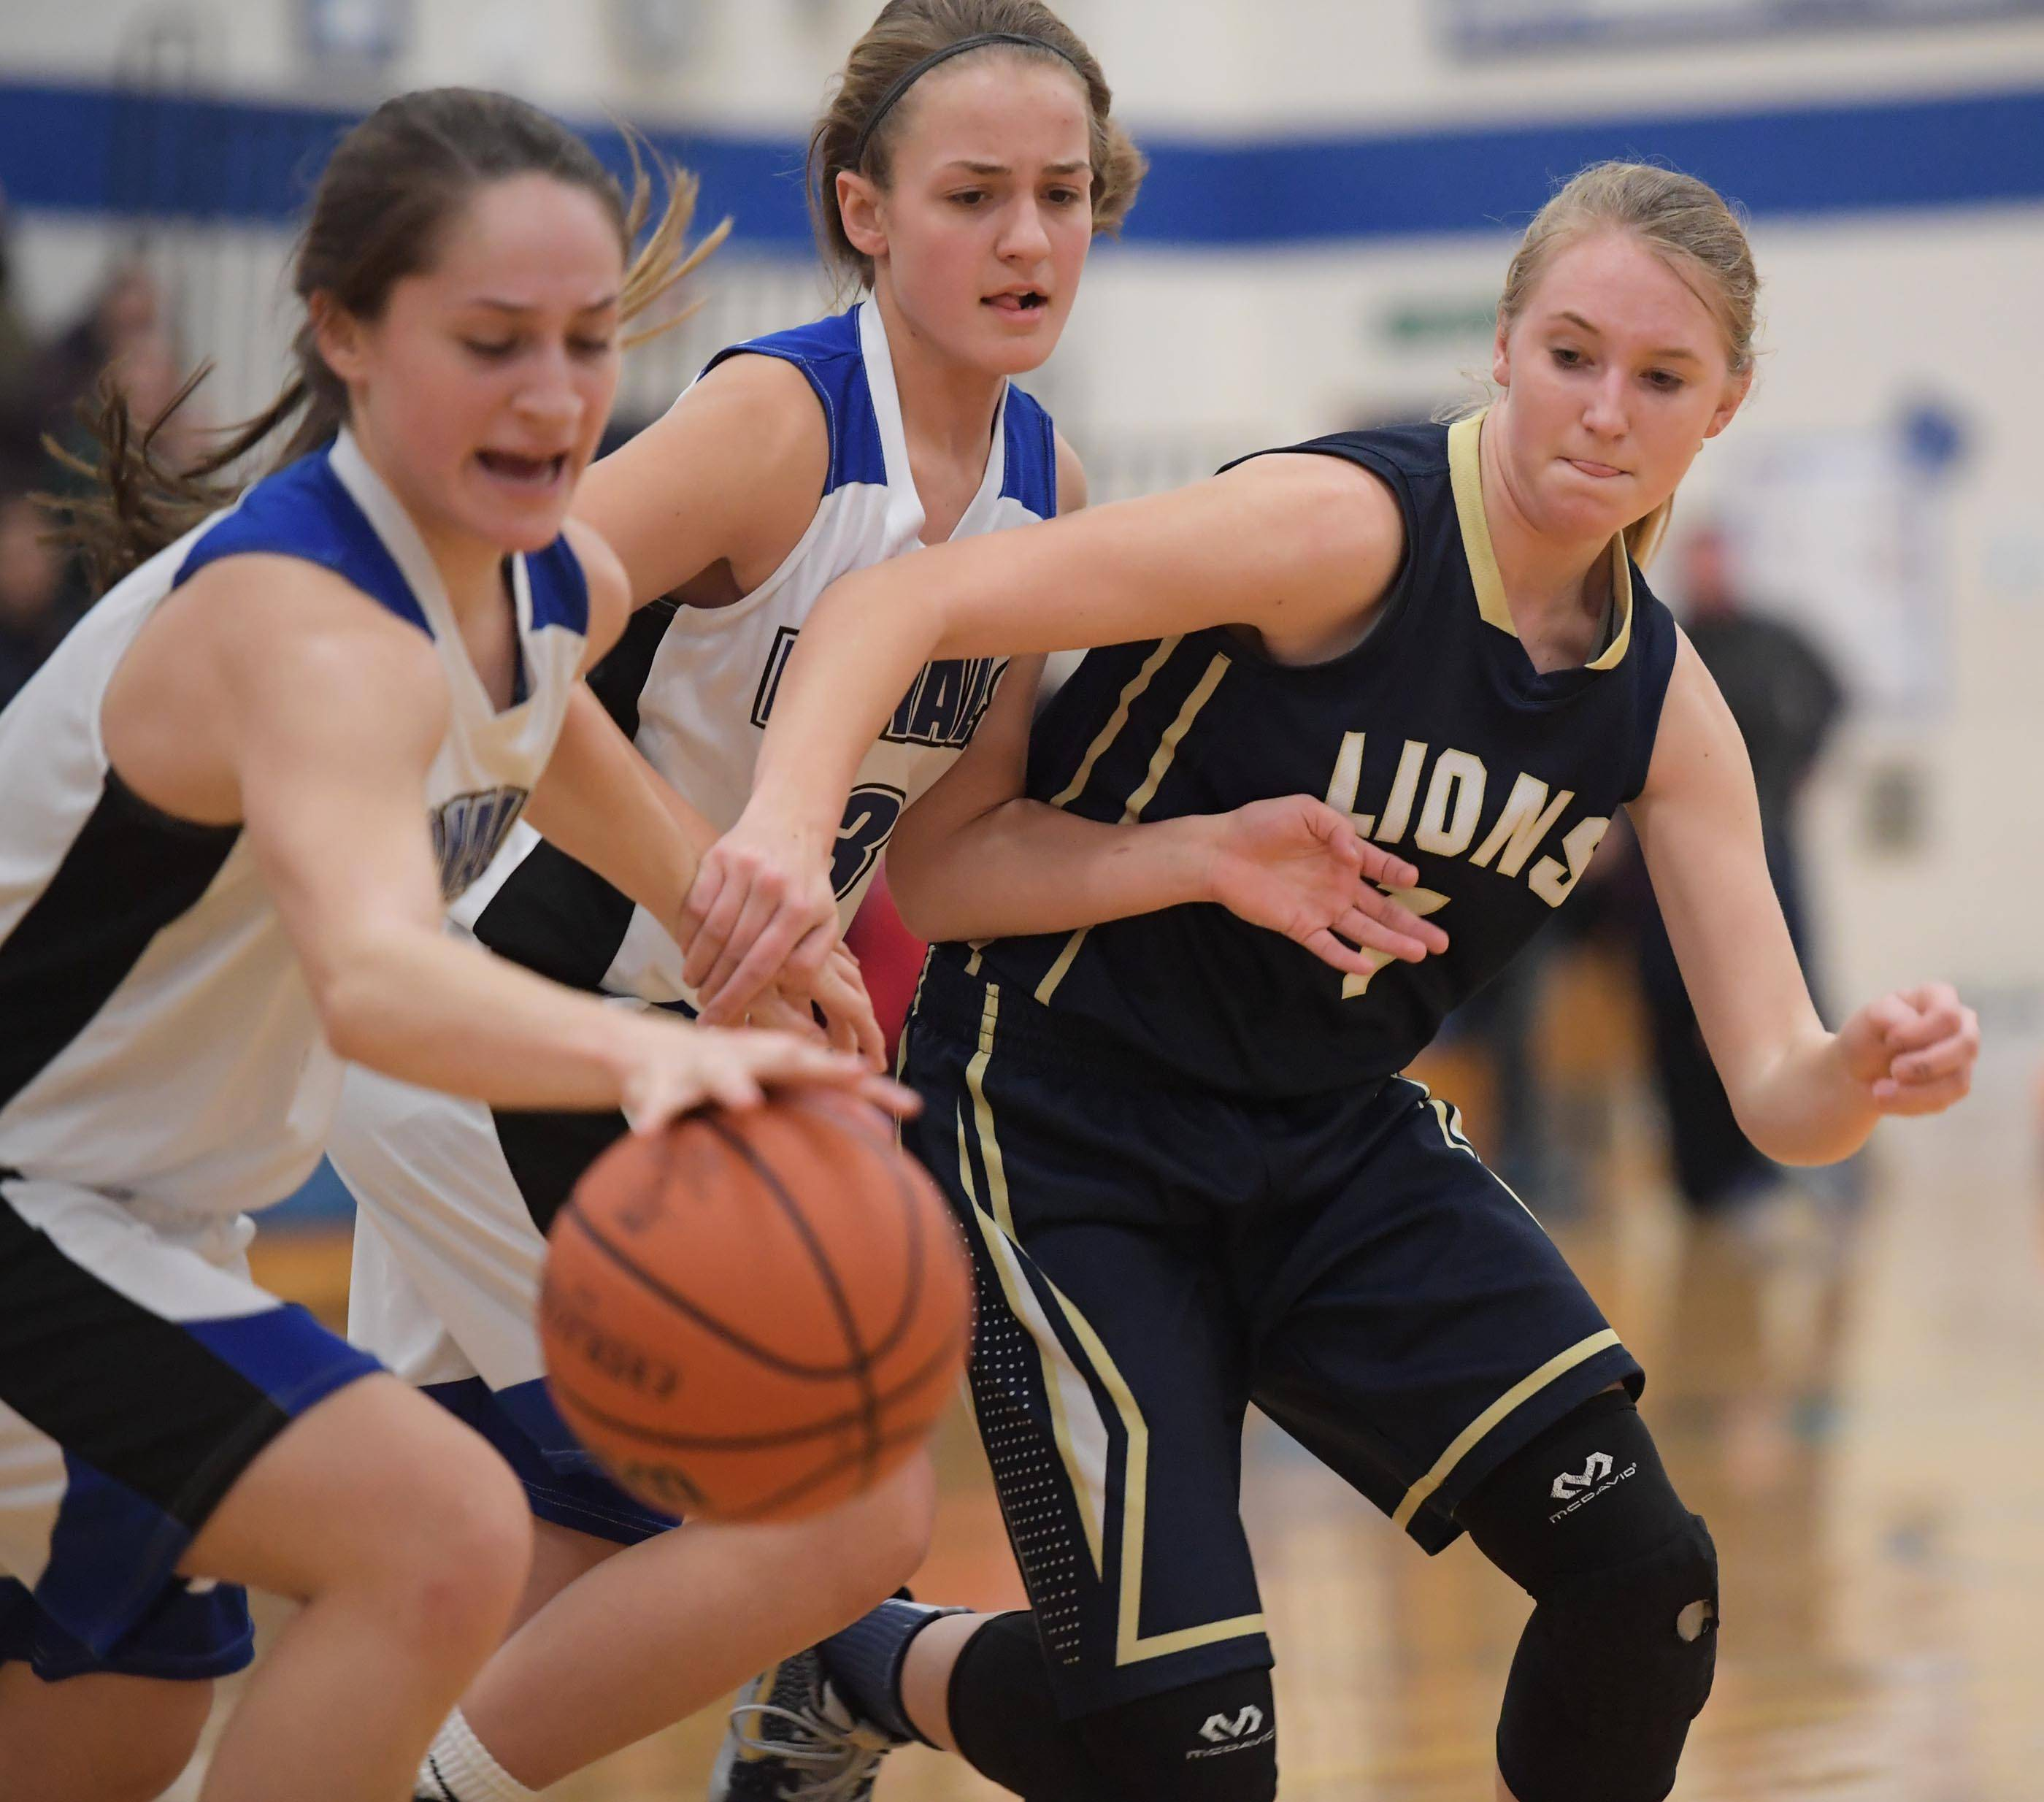 Rosary's Jenna Hernandez recovers a loose ball as teammate Kristin Timko holds back Harvest Christian's Maddy Martin in a girls basketball game in Aurora Tuesday.